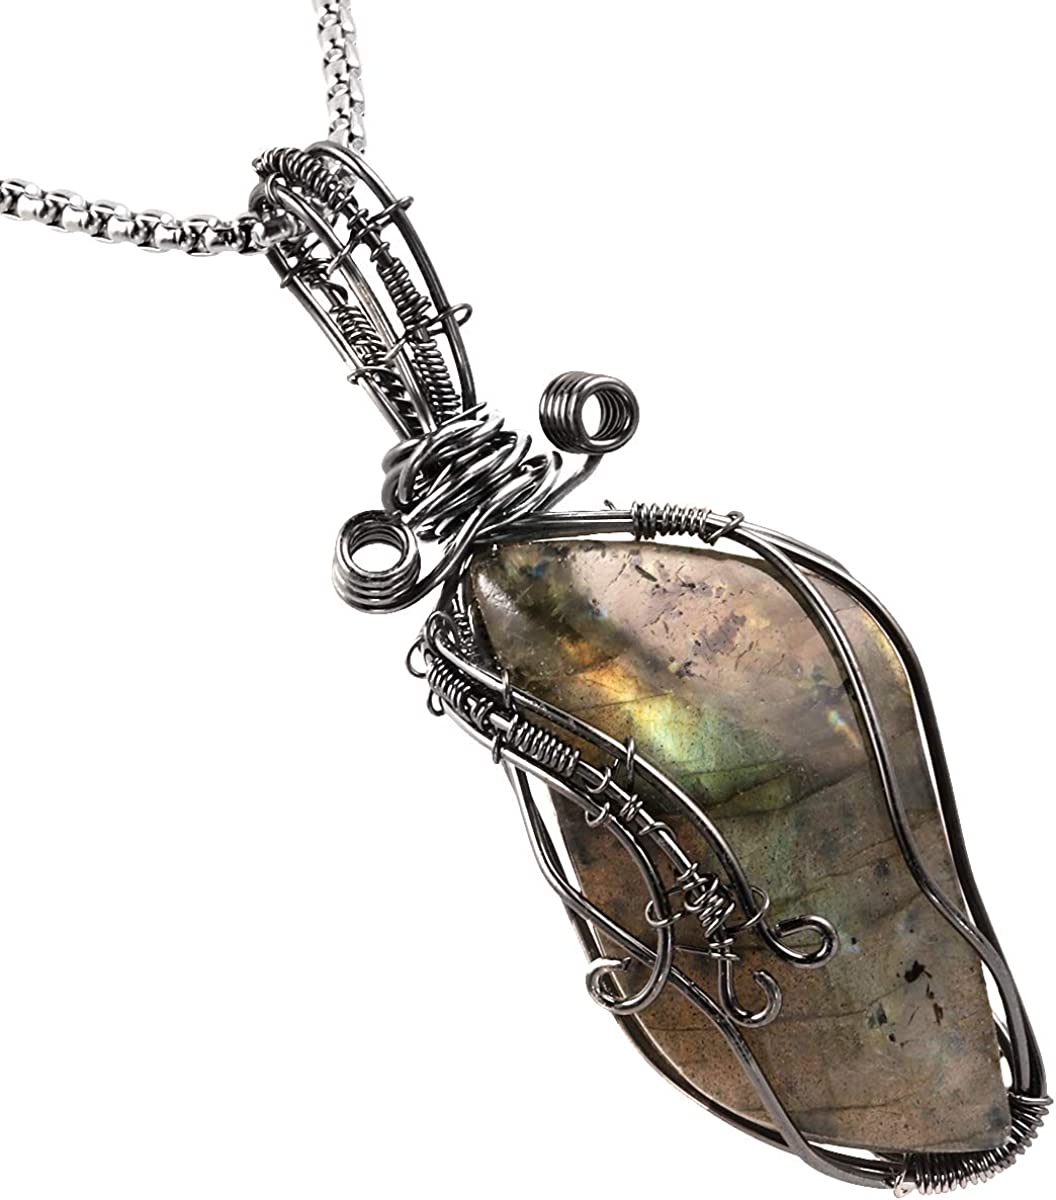 rainbow Labradorite pendant wire wrapped in silver big jewelry wire wrap boho crystals gifts for her chakras metaphysical handmade